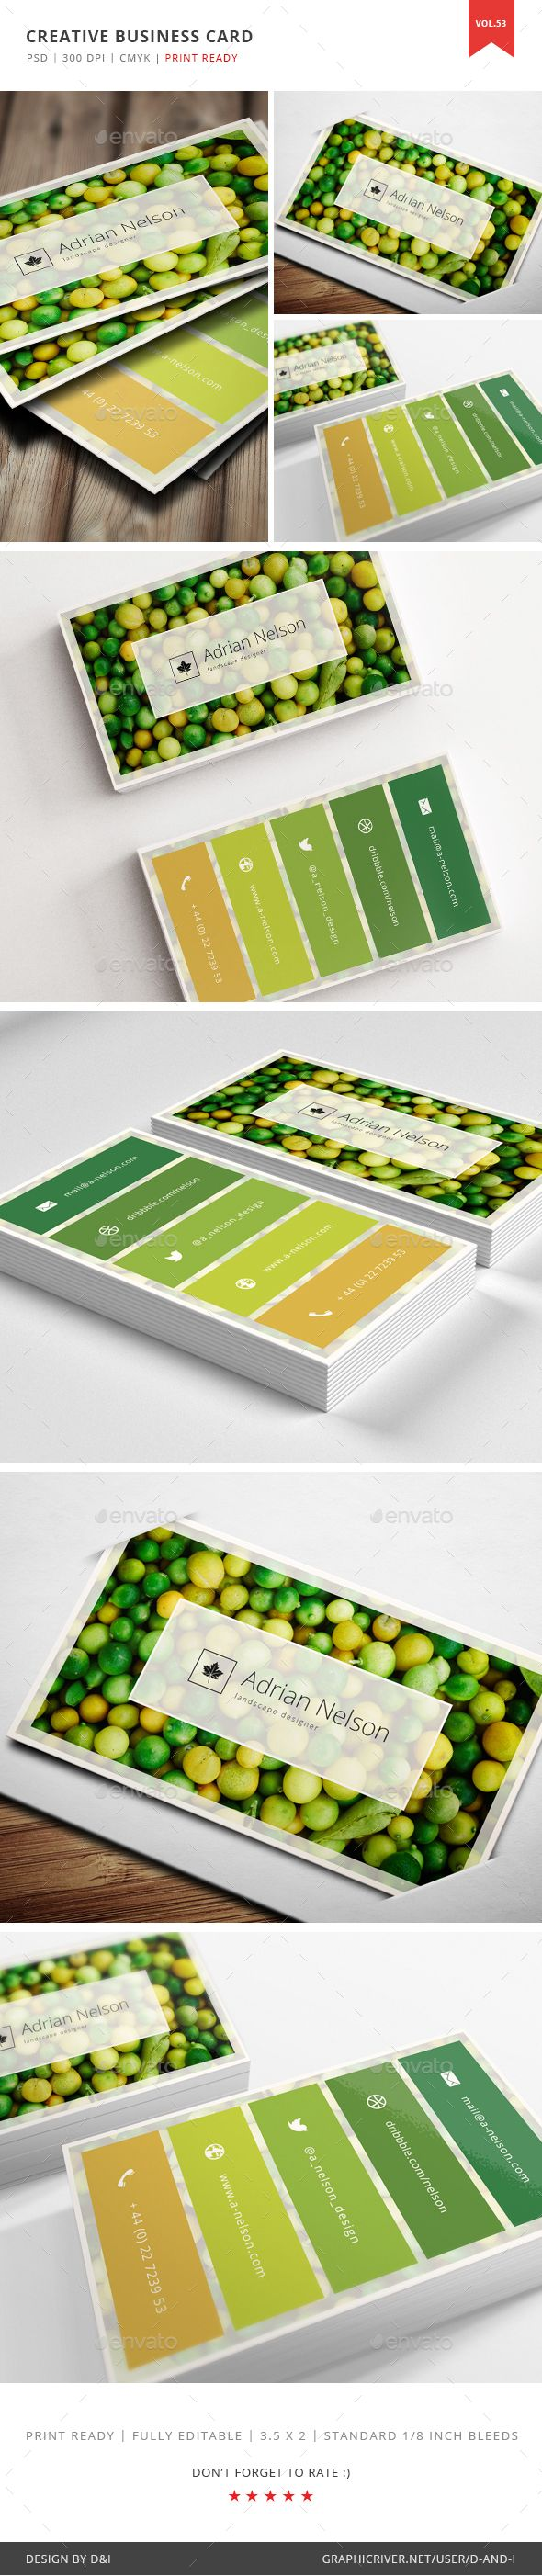 Best 25 business card size ideas on pinterest standard business creative landscape designer business card vol 53 magicingreecefo Images